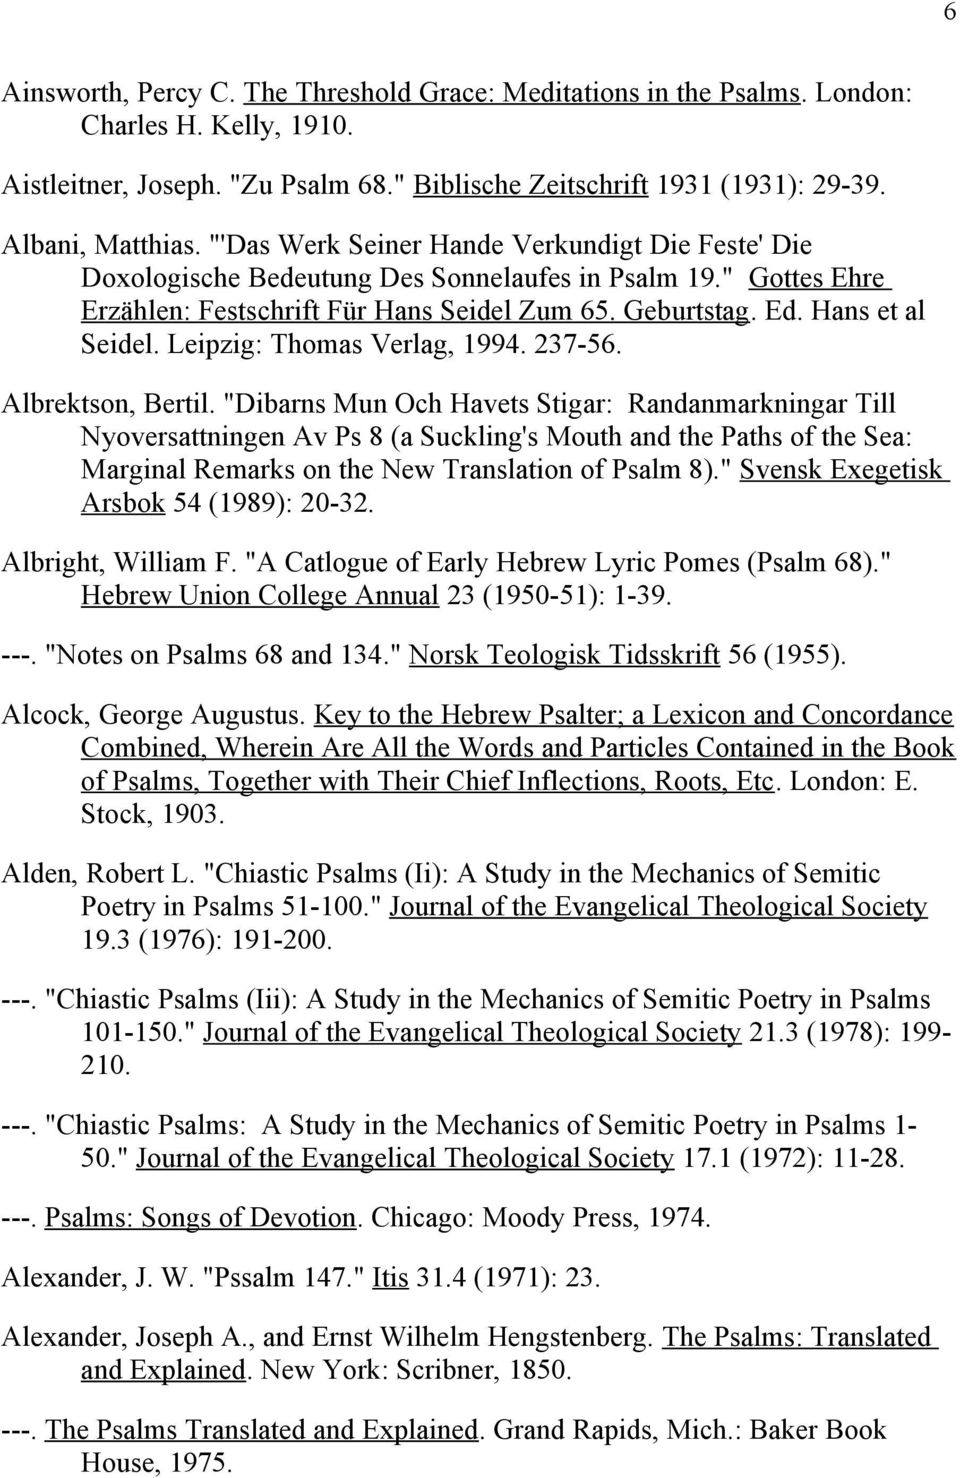 Psalms Bibliography Rough and Working (3/1/05) - PDF